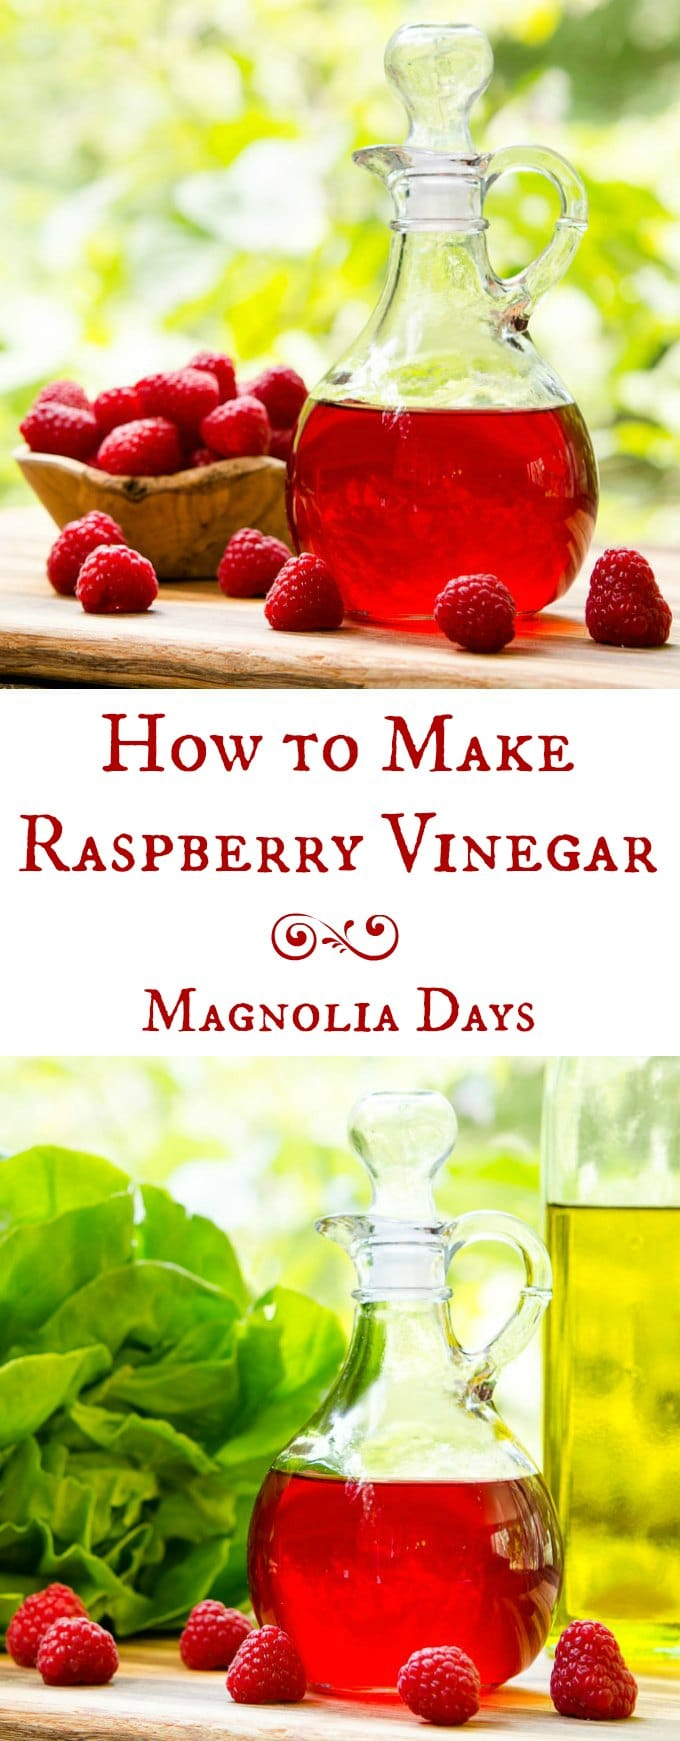 How to make raspberry vinegar by infusing fresh raspberries into vinegar. It's so easy to do. The vinegar has bright berry flavor and a hint of lemon. It's great for salads, dressings, and to give as gifts.